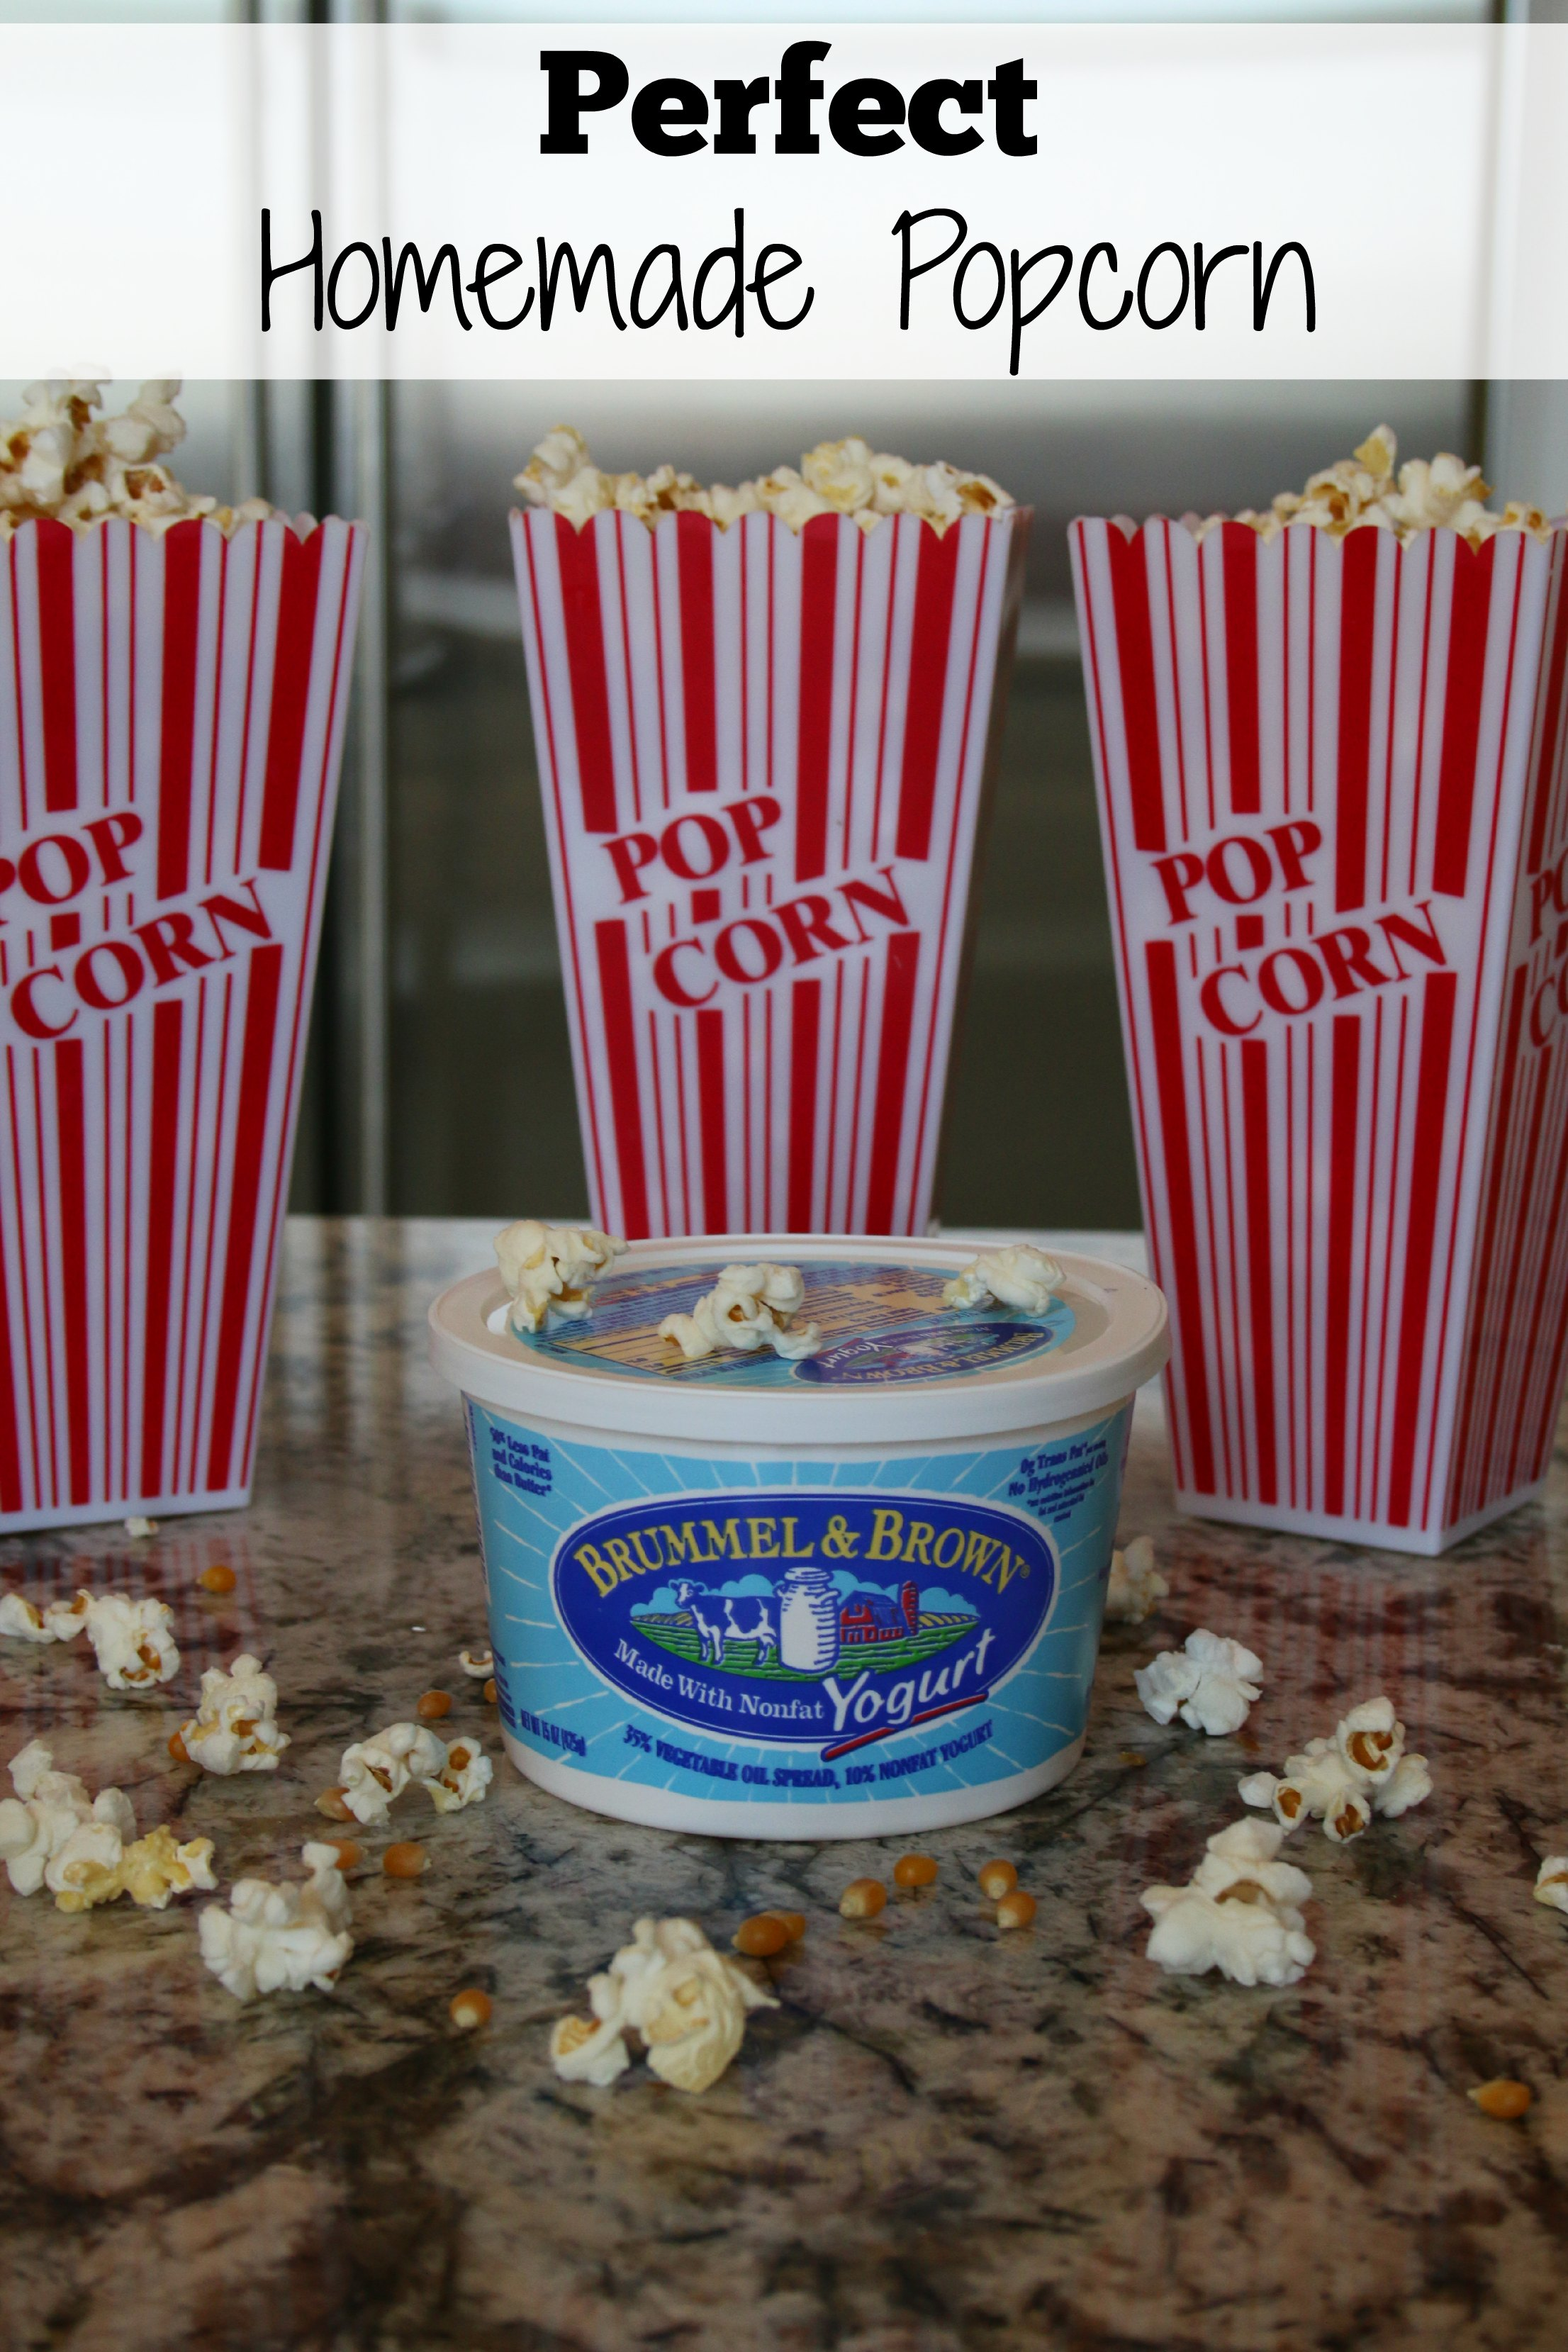 Perfect Homemade Popcorn with Brummel and Brown